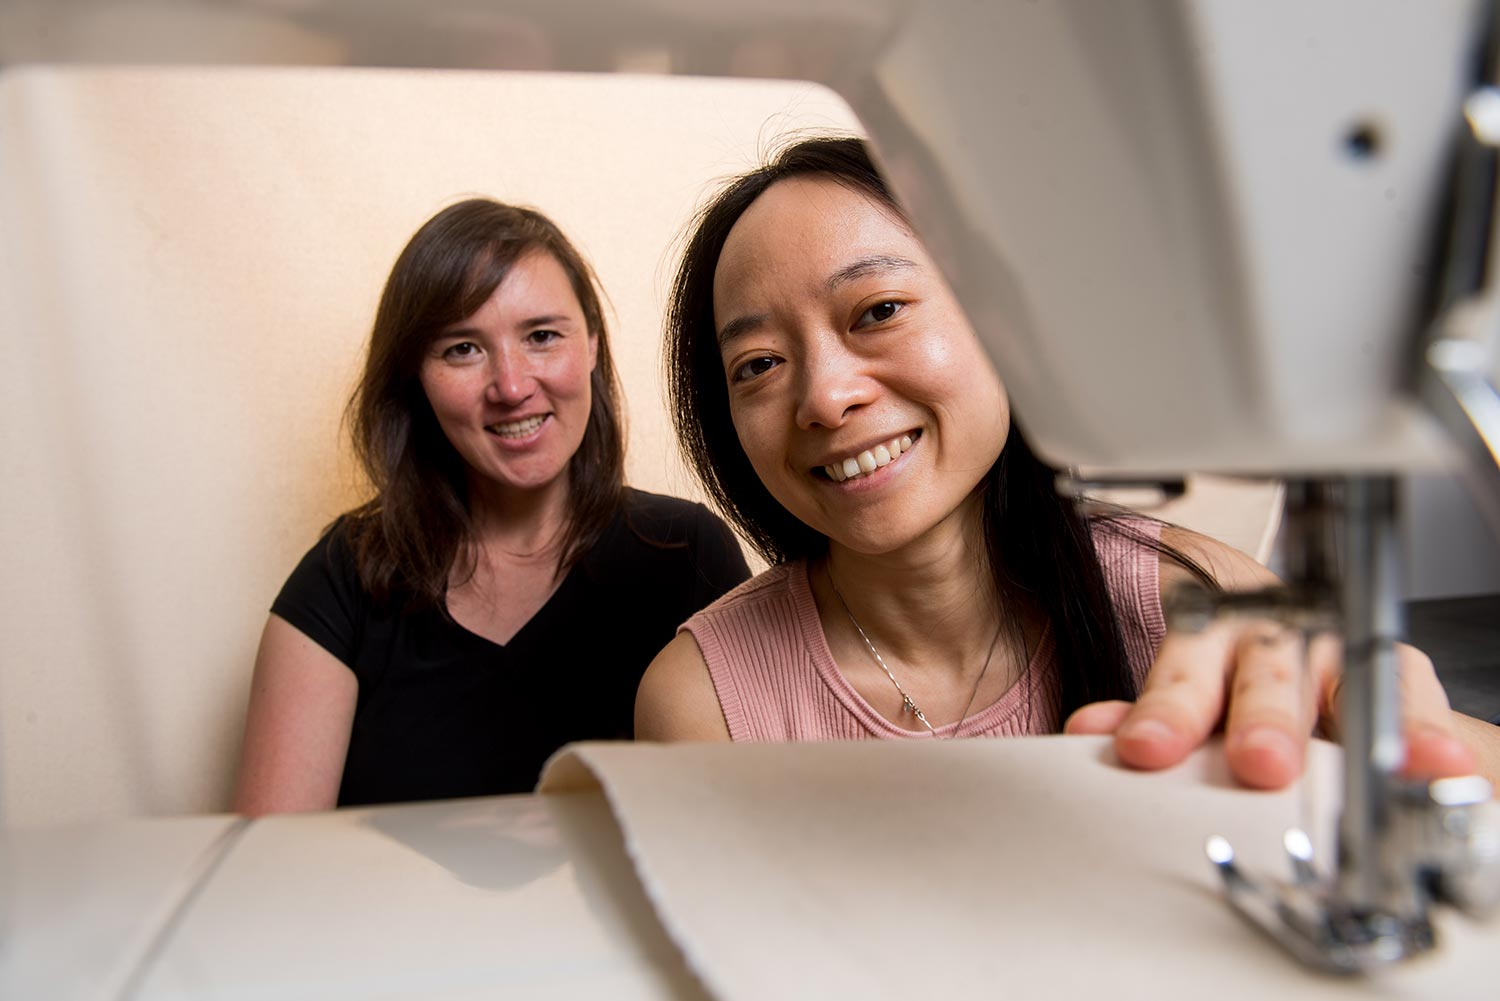 Boston University computer science researchers Emily Whiting and Xiaoting Zhang pose for a portrait behind a sewing machine.